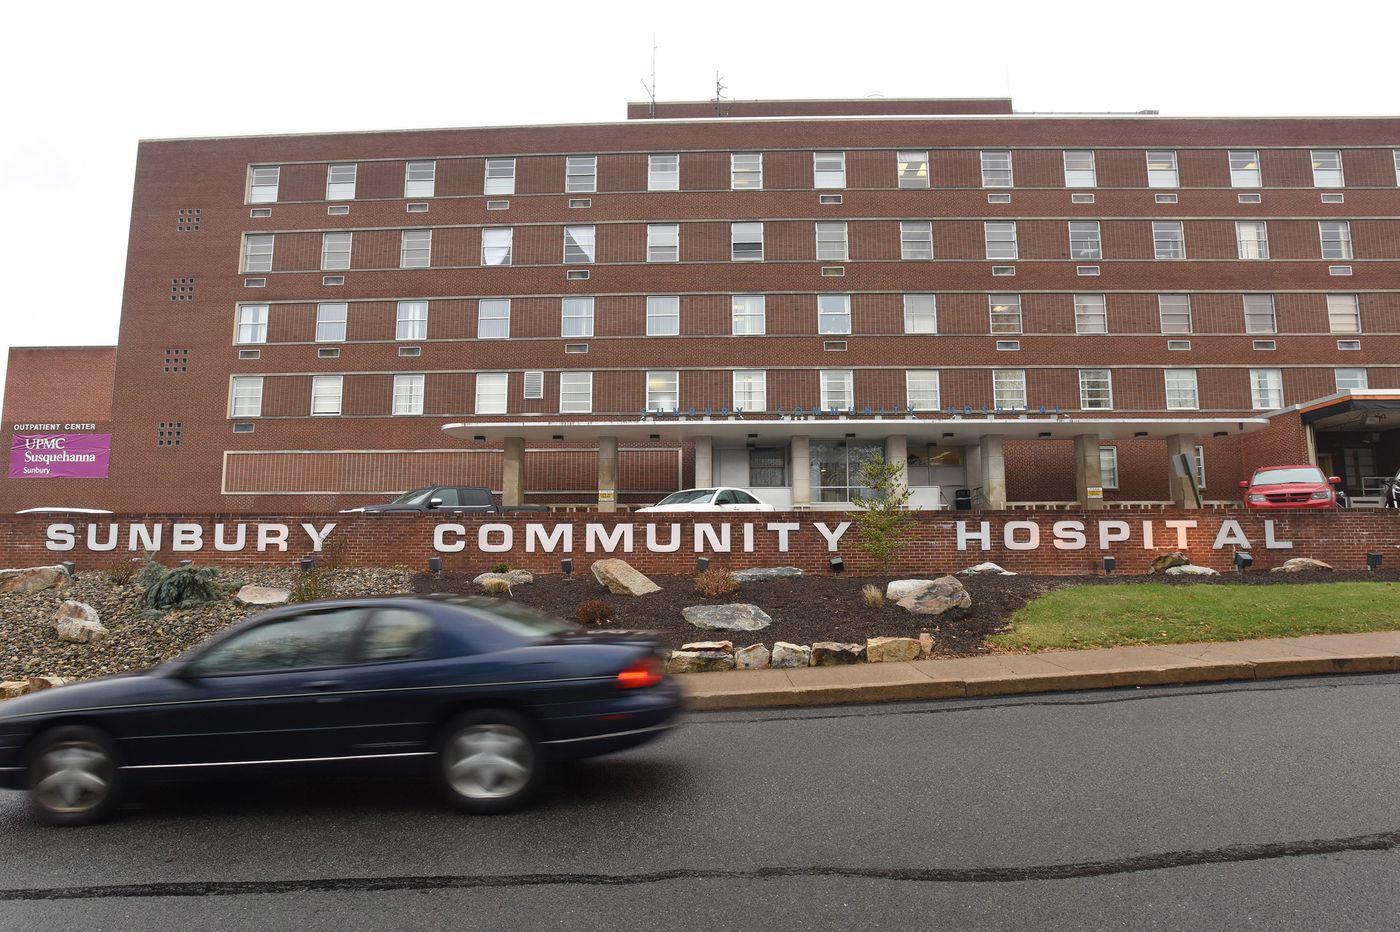 Closure of Sunbury's only hospital follows national trend for rural healthcare